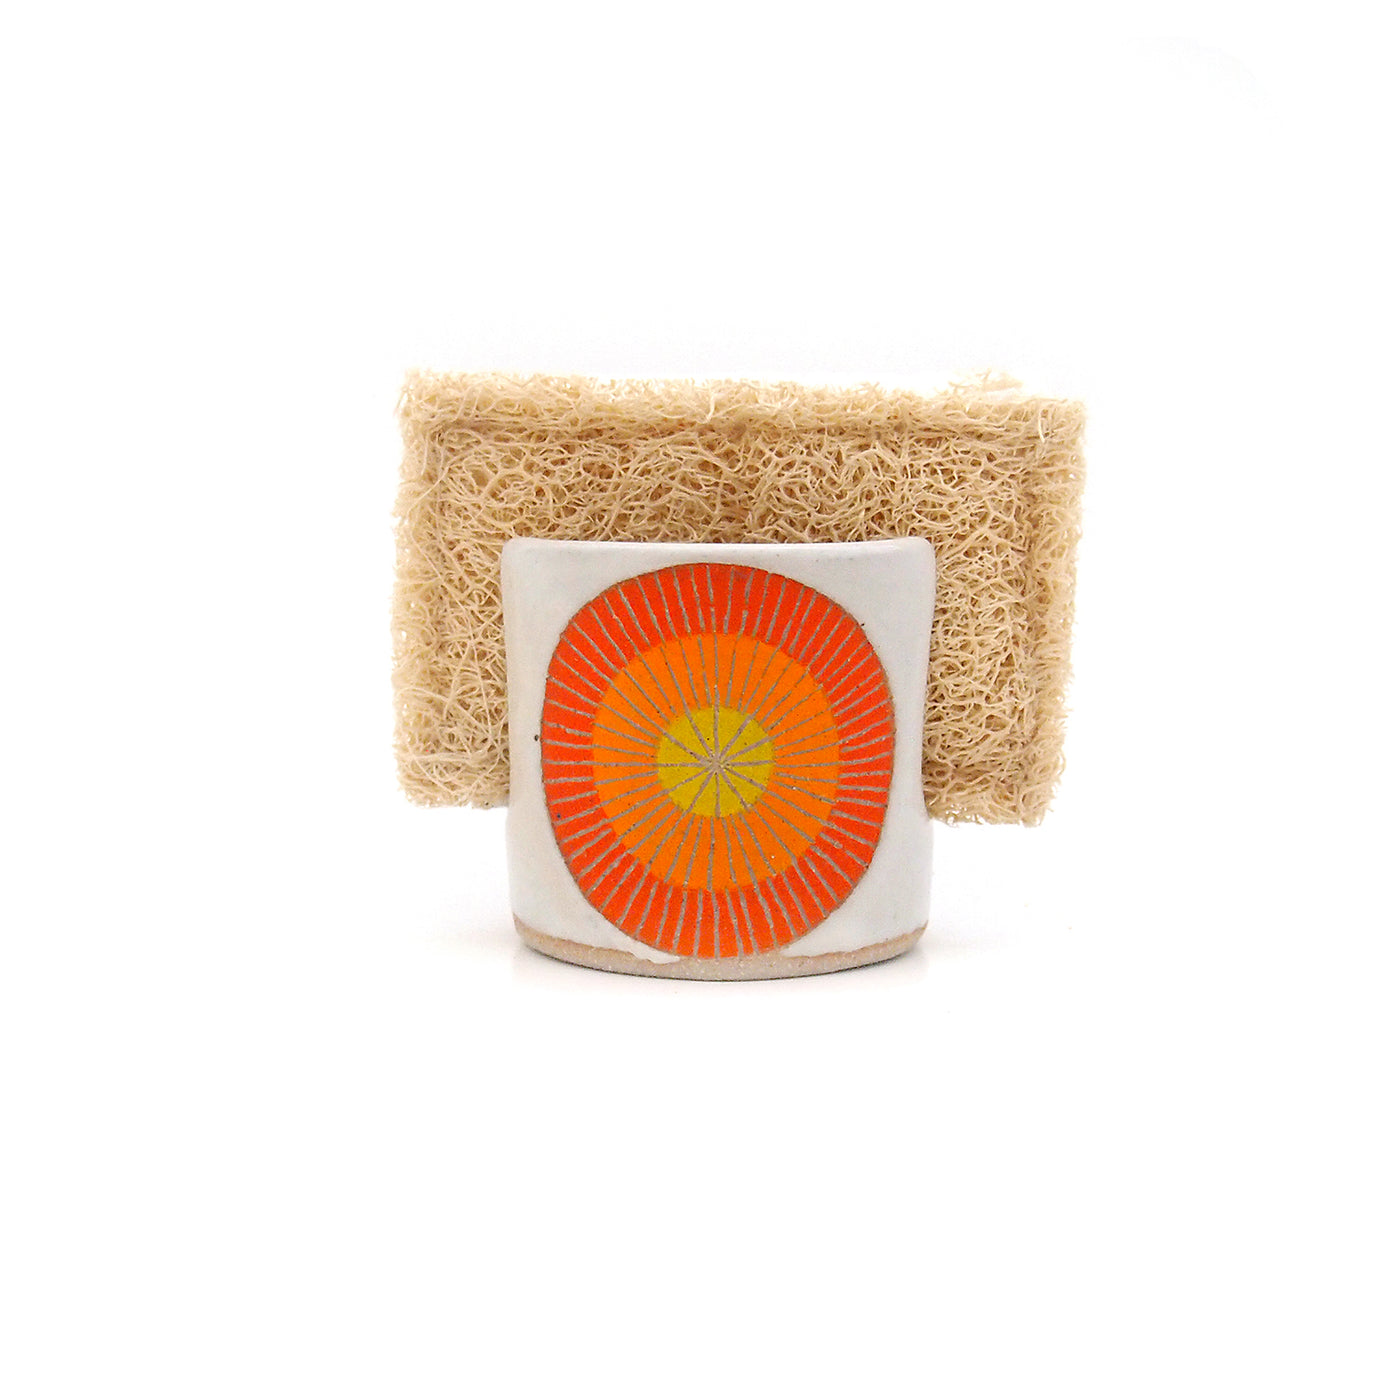 jen e ceramics: Sunrise Sponge Holder